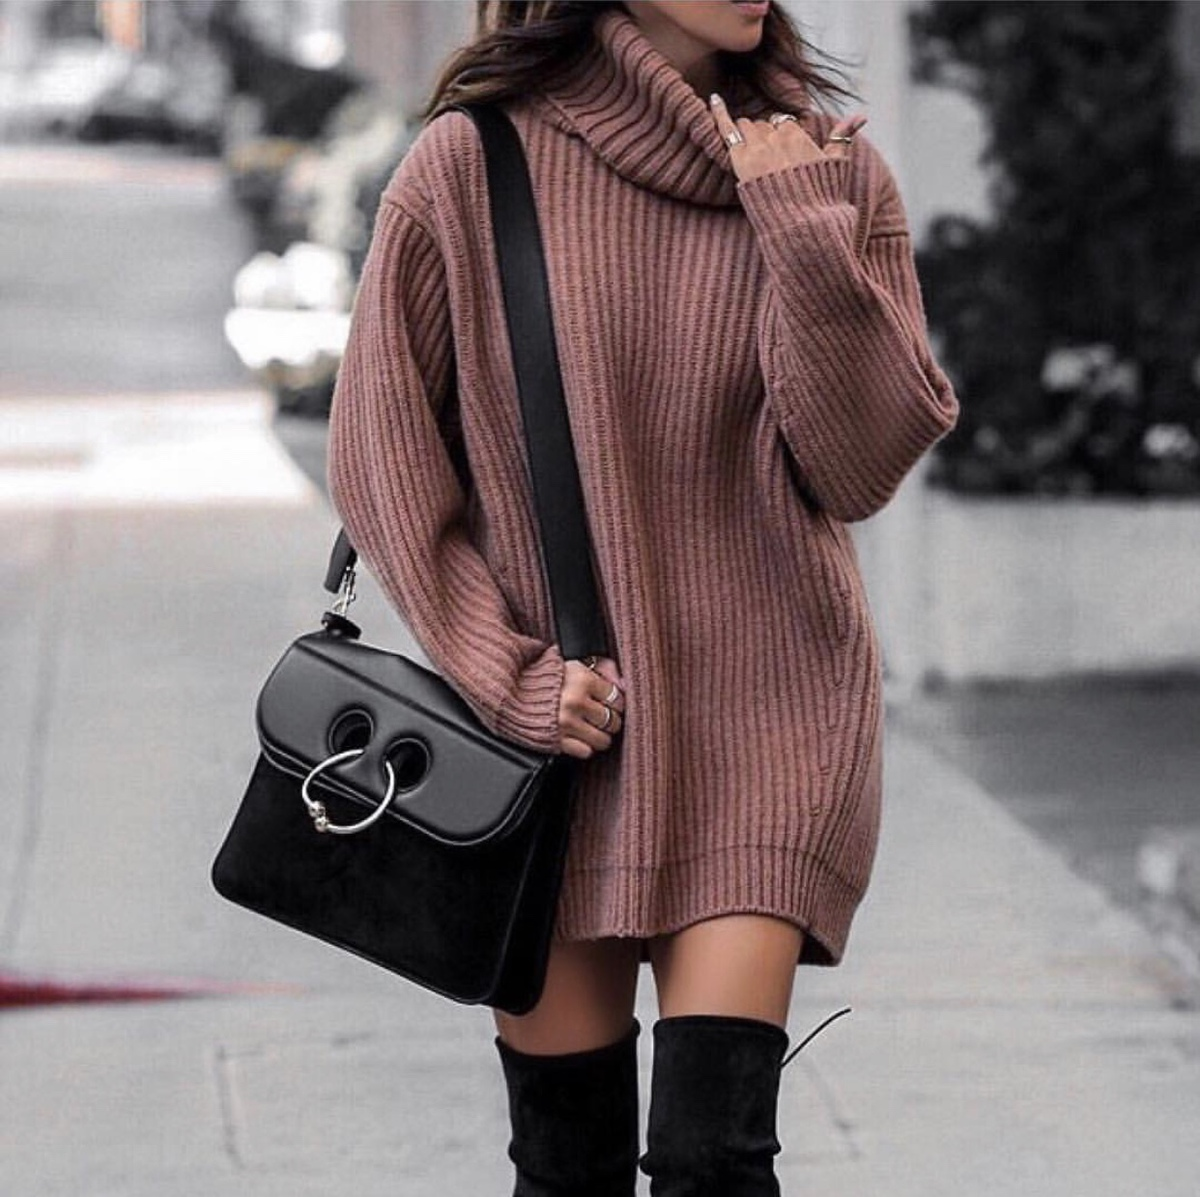 fashion blogger lolario style wears a slouchy sweater dress with stuart weitzman over the knee boots | lolariostyle.com